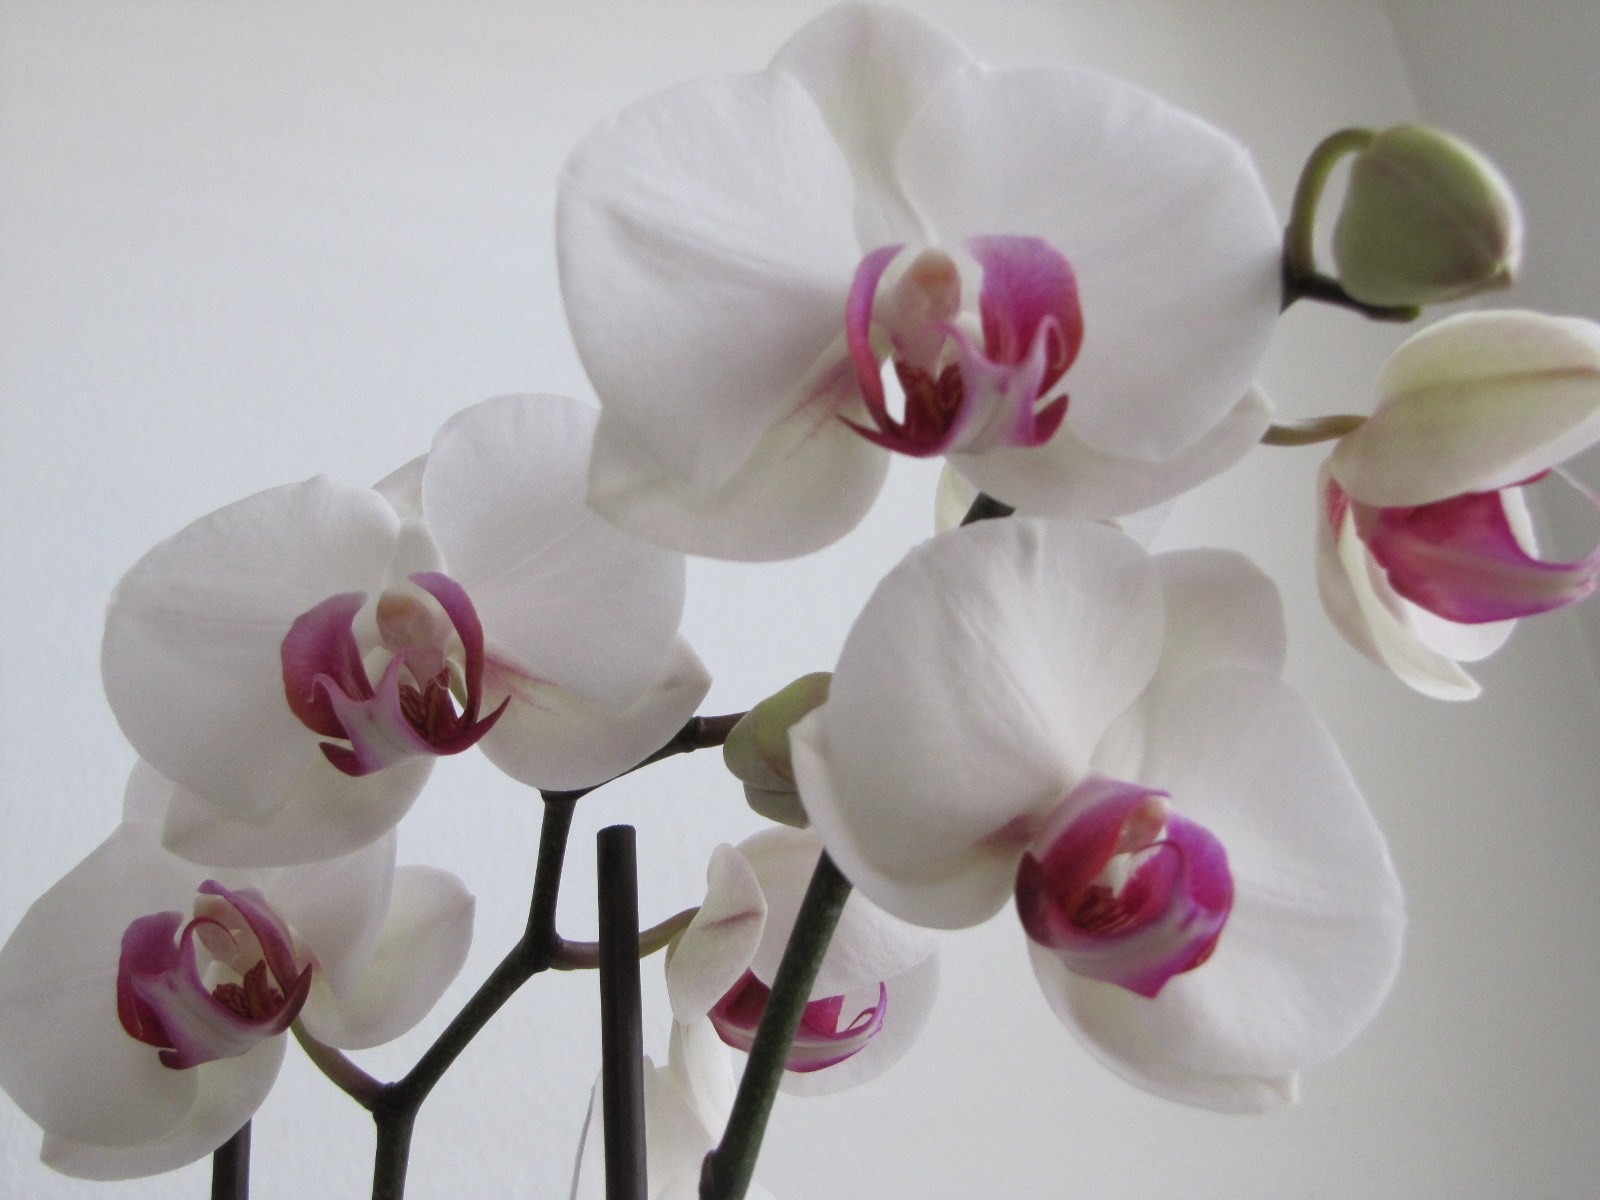 Snow-White Orchid, by Rosangela C. Taylor